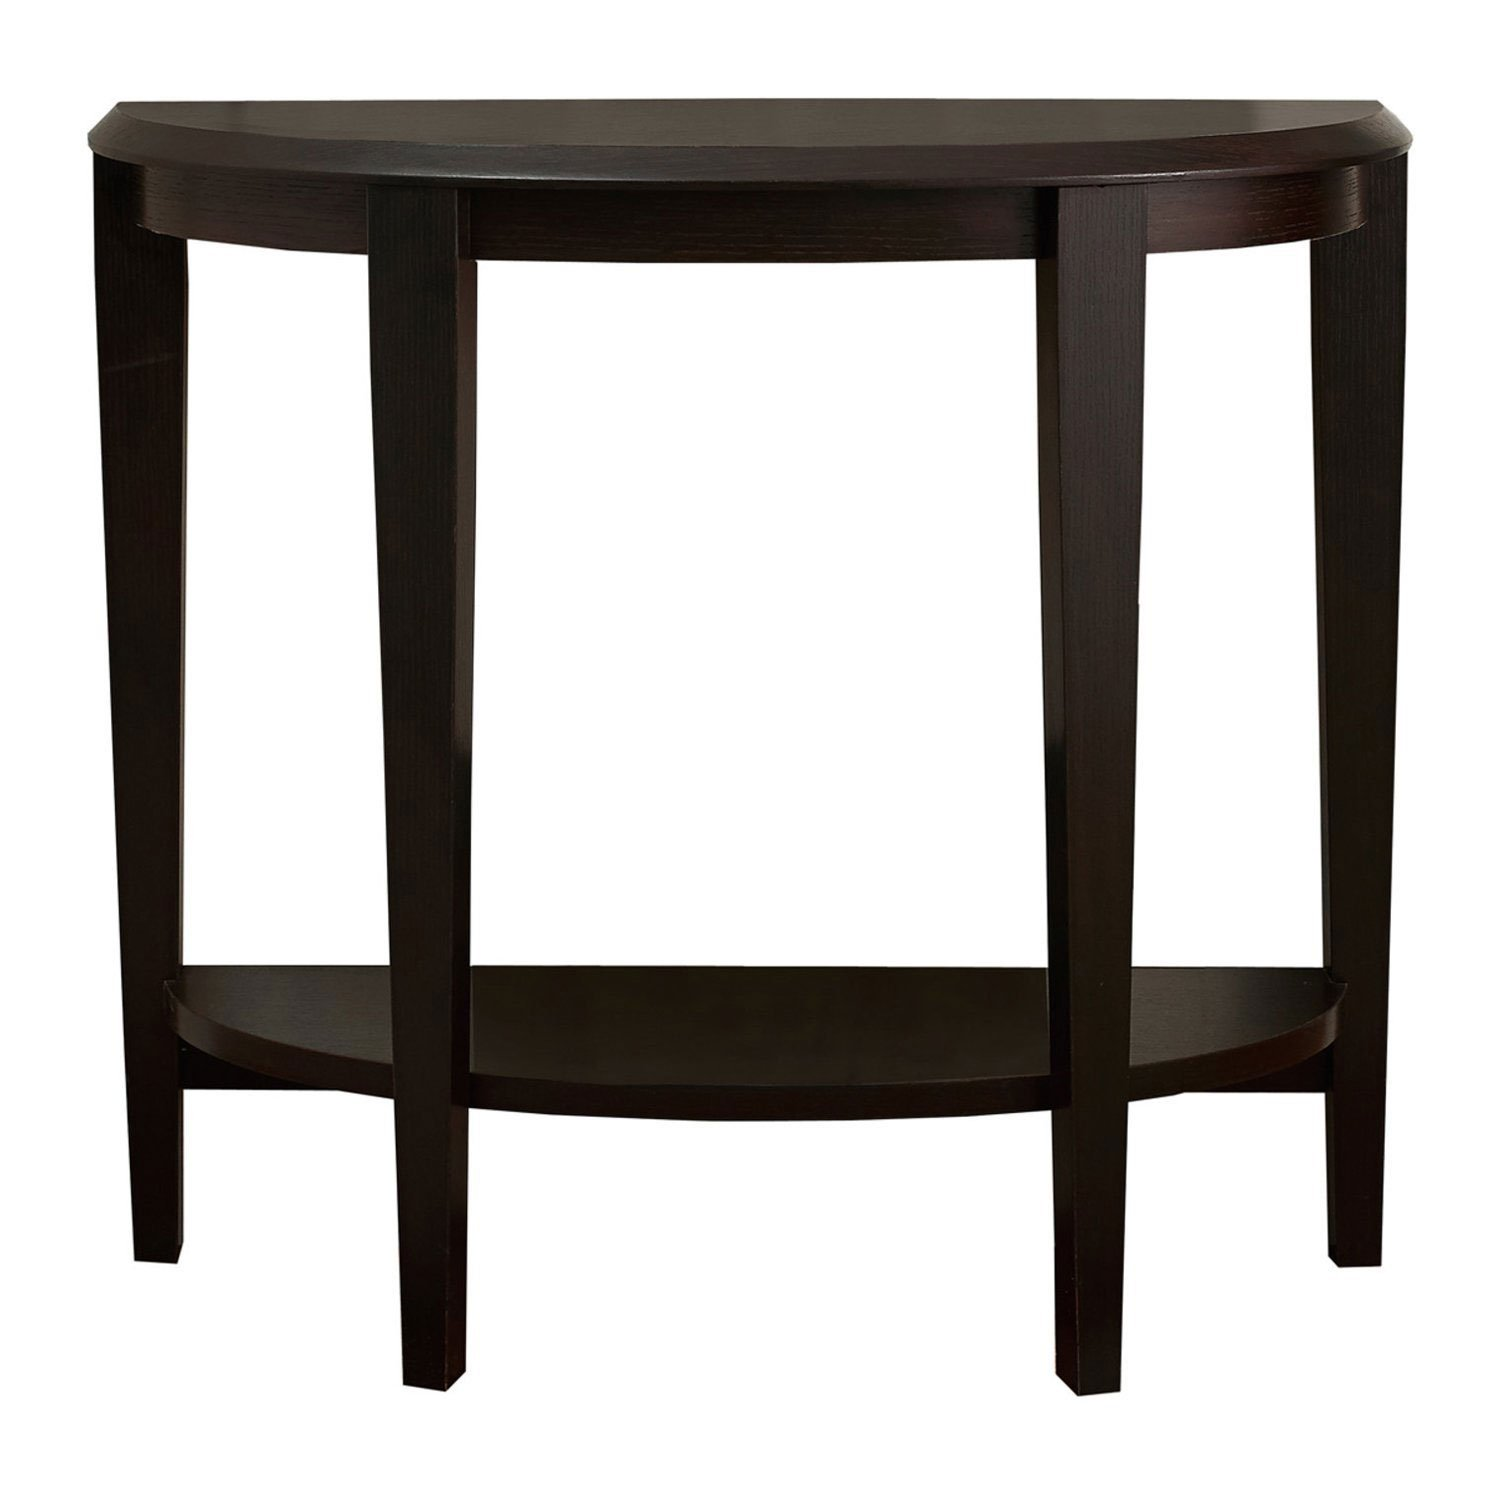 monarch accent table cappuccino hall console inch white drum end with storage coffee under metal dining room chairs black lamp shades nightstand acrylic side making legs tables